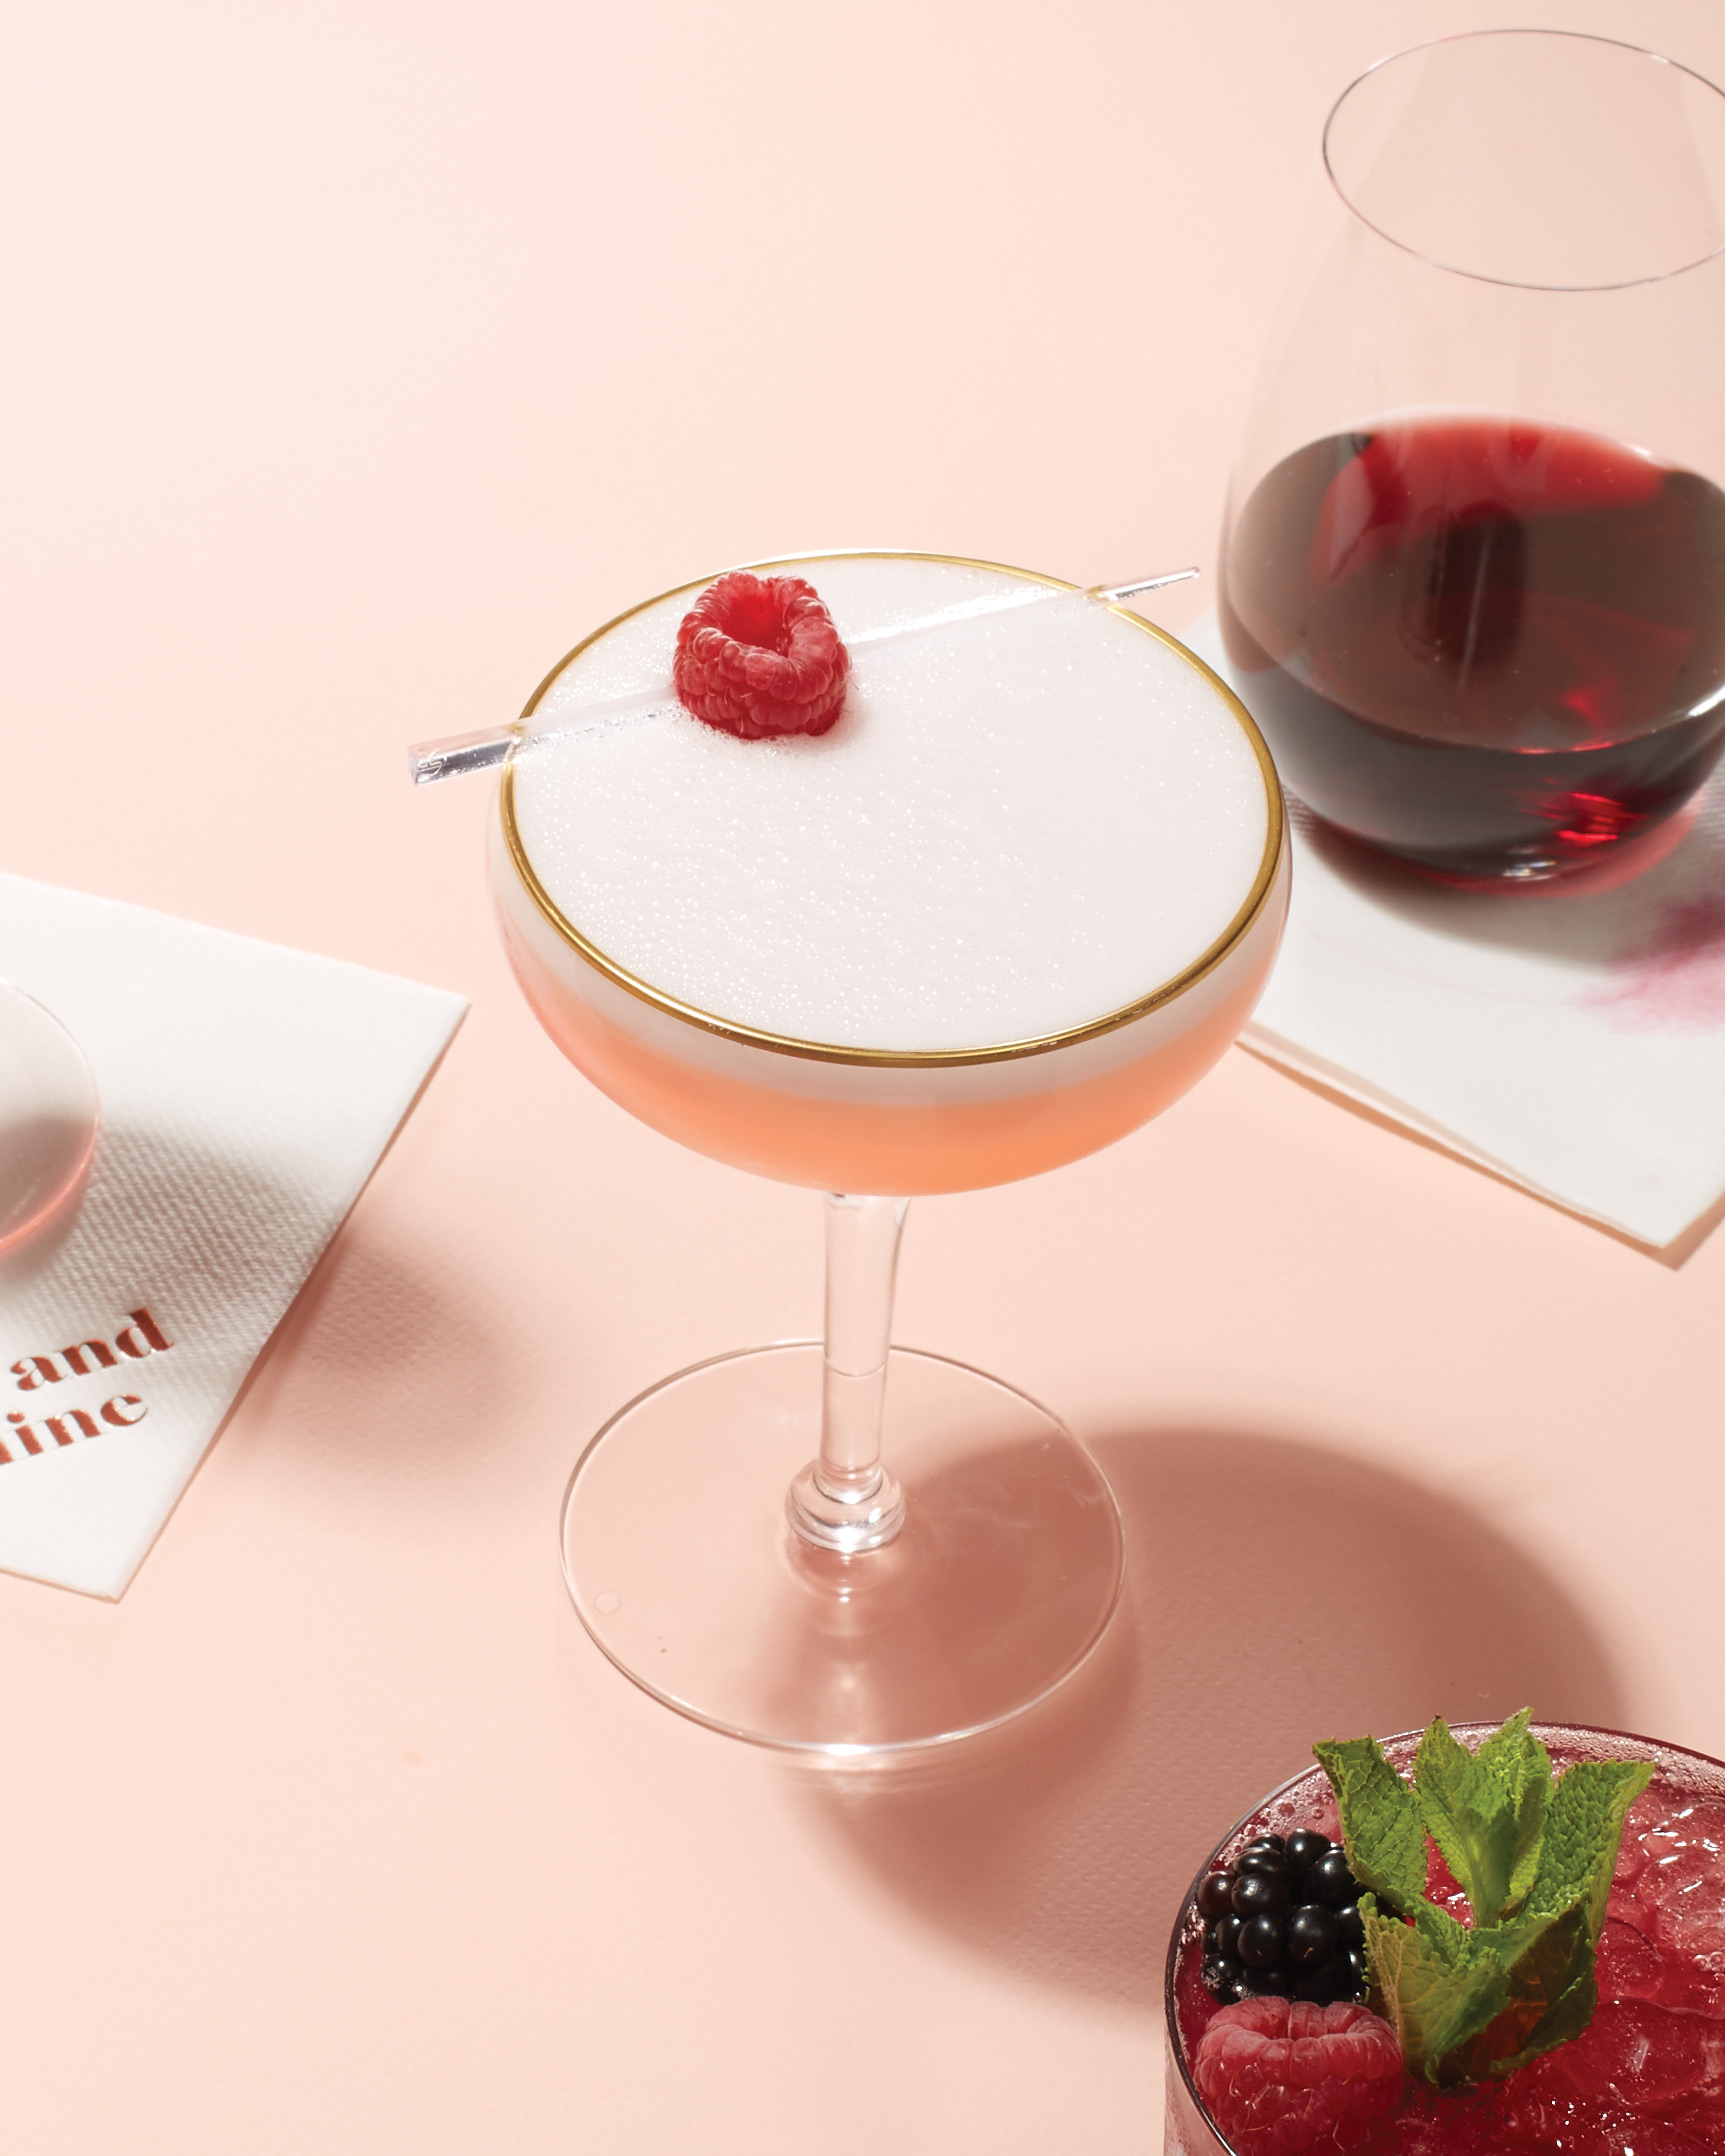 blush-berry-cocktails-clover-club-skewered-raspberry-047-d113029.jpg